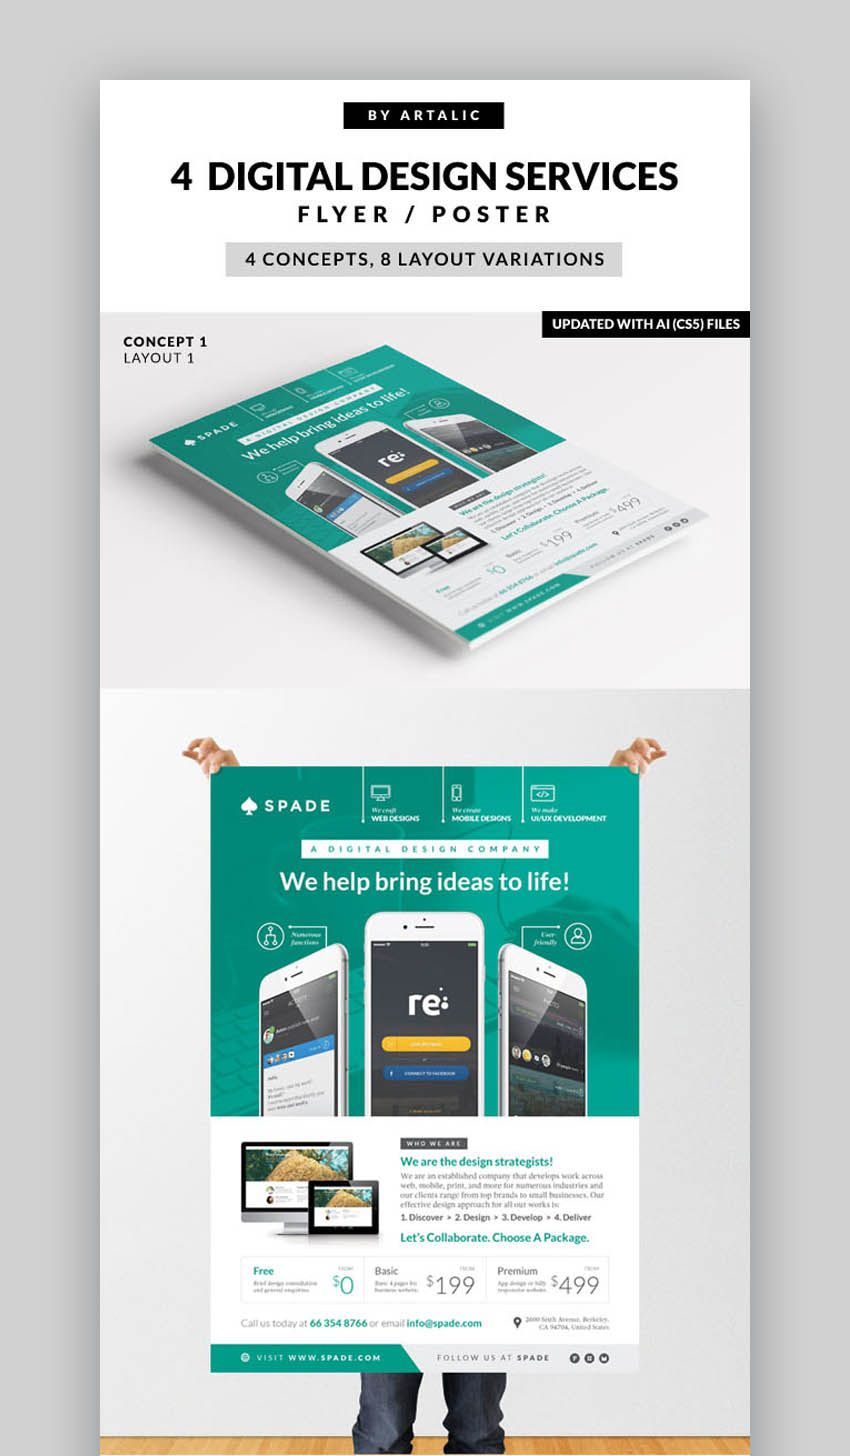 007 Magnificent In Design Flyer Template Highest Clarity  Templates Indesign Free For Mac EventFull